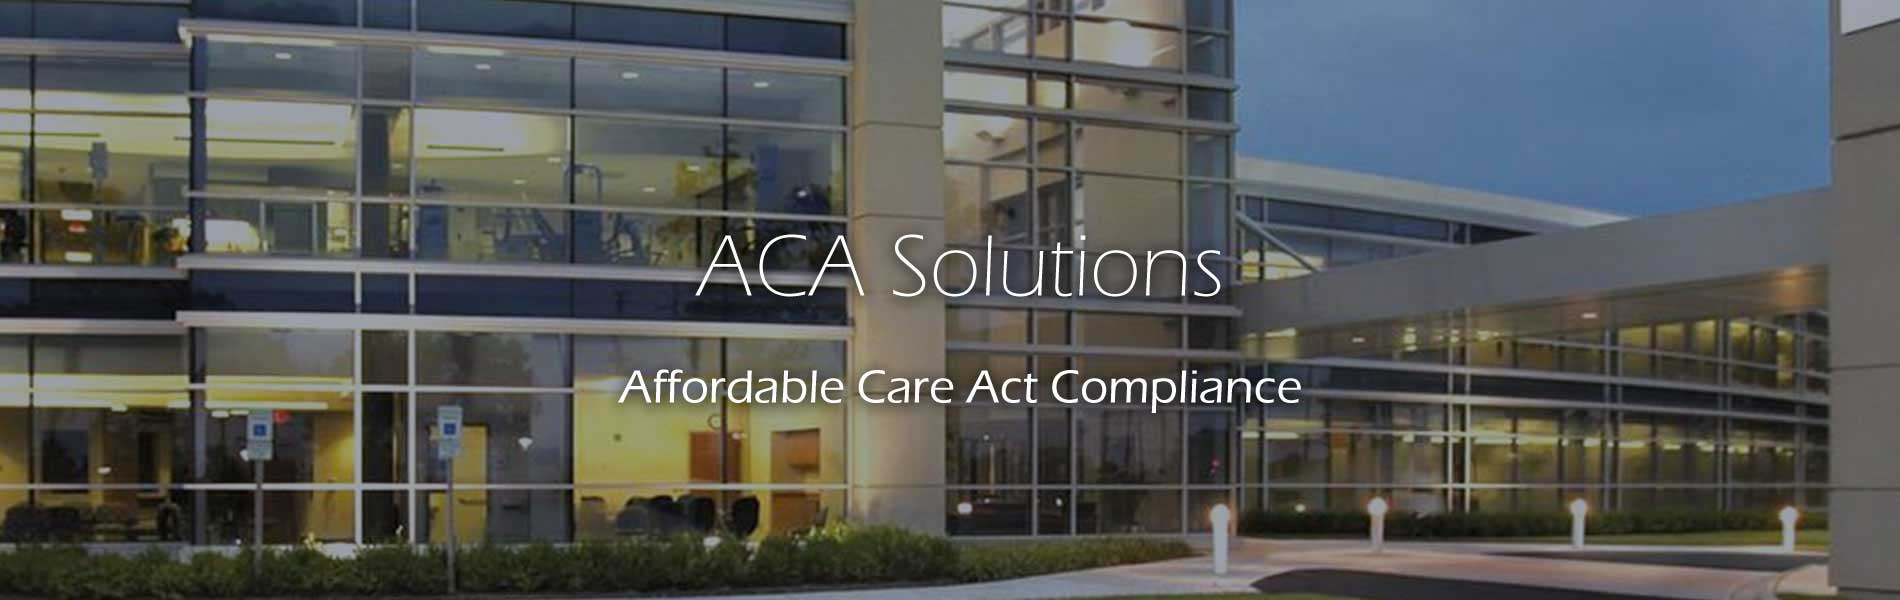 ACA Affordable Care Act Compliance